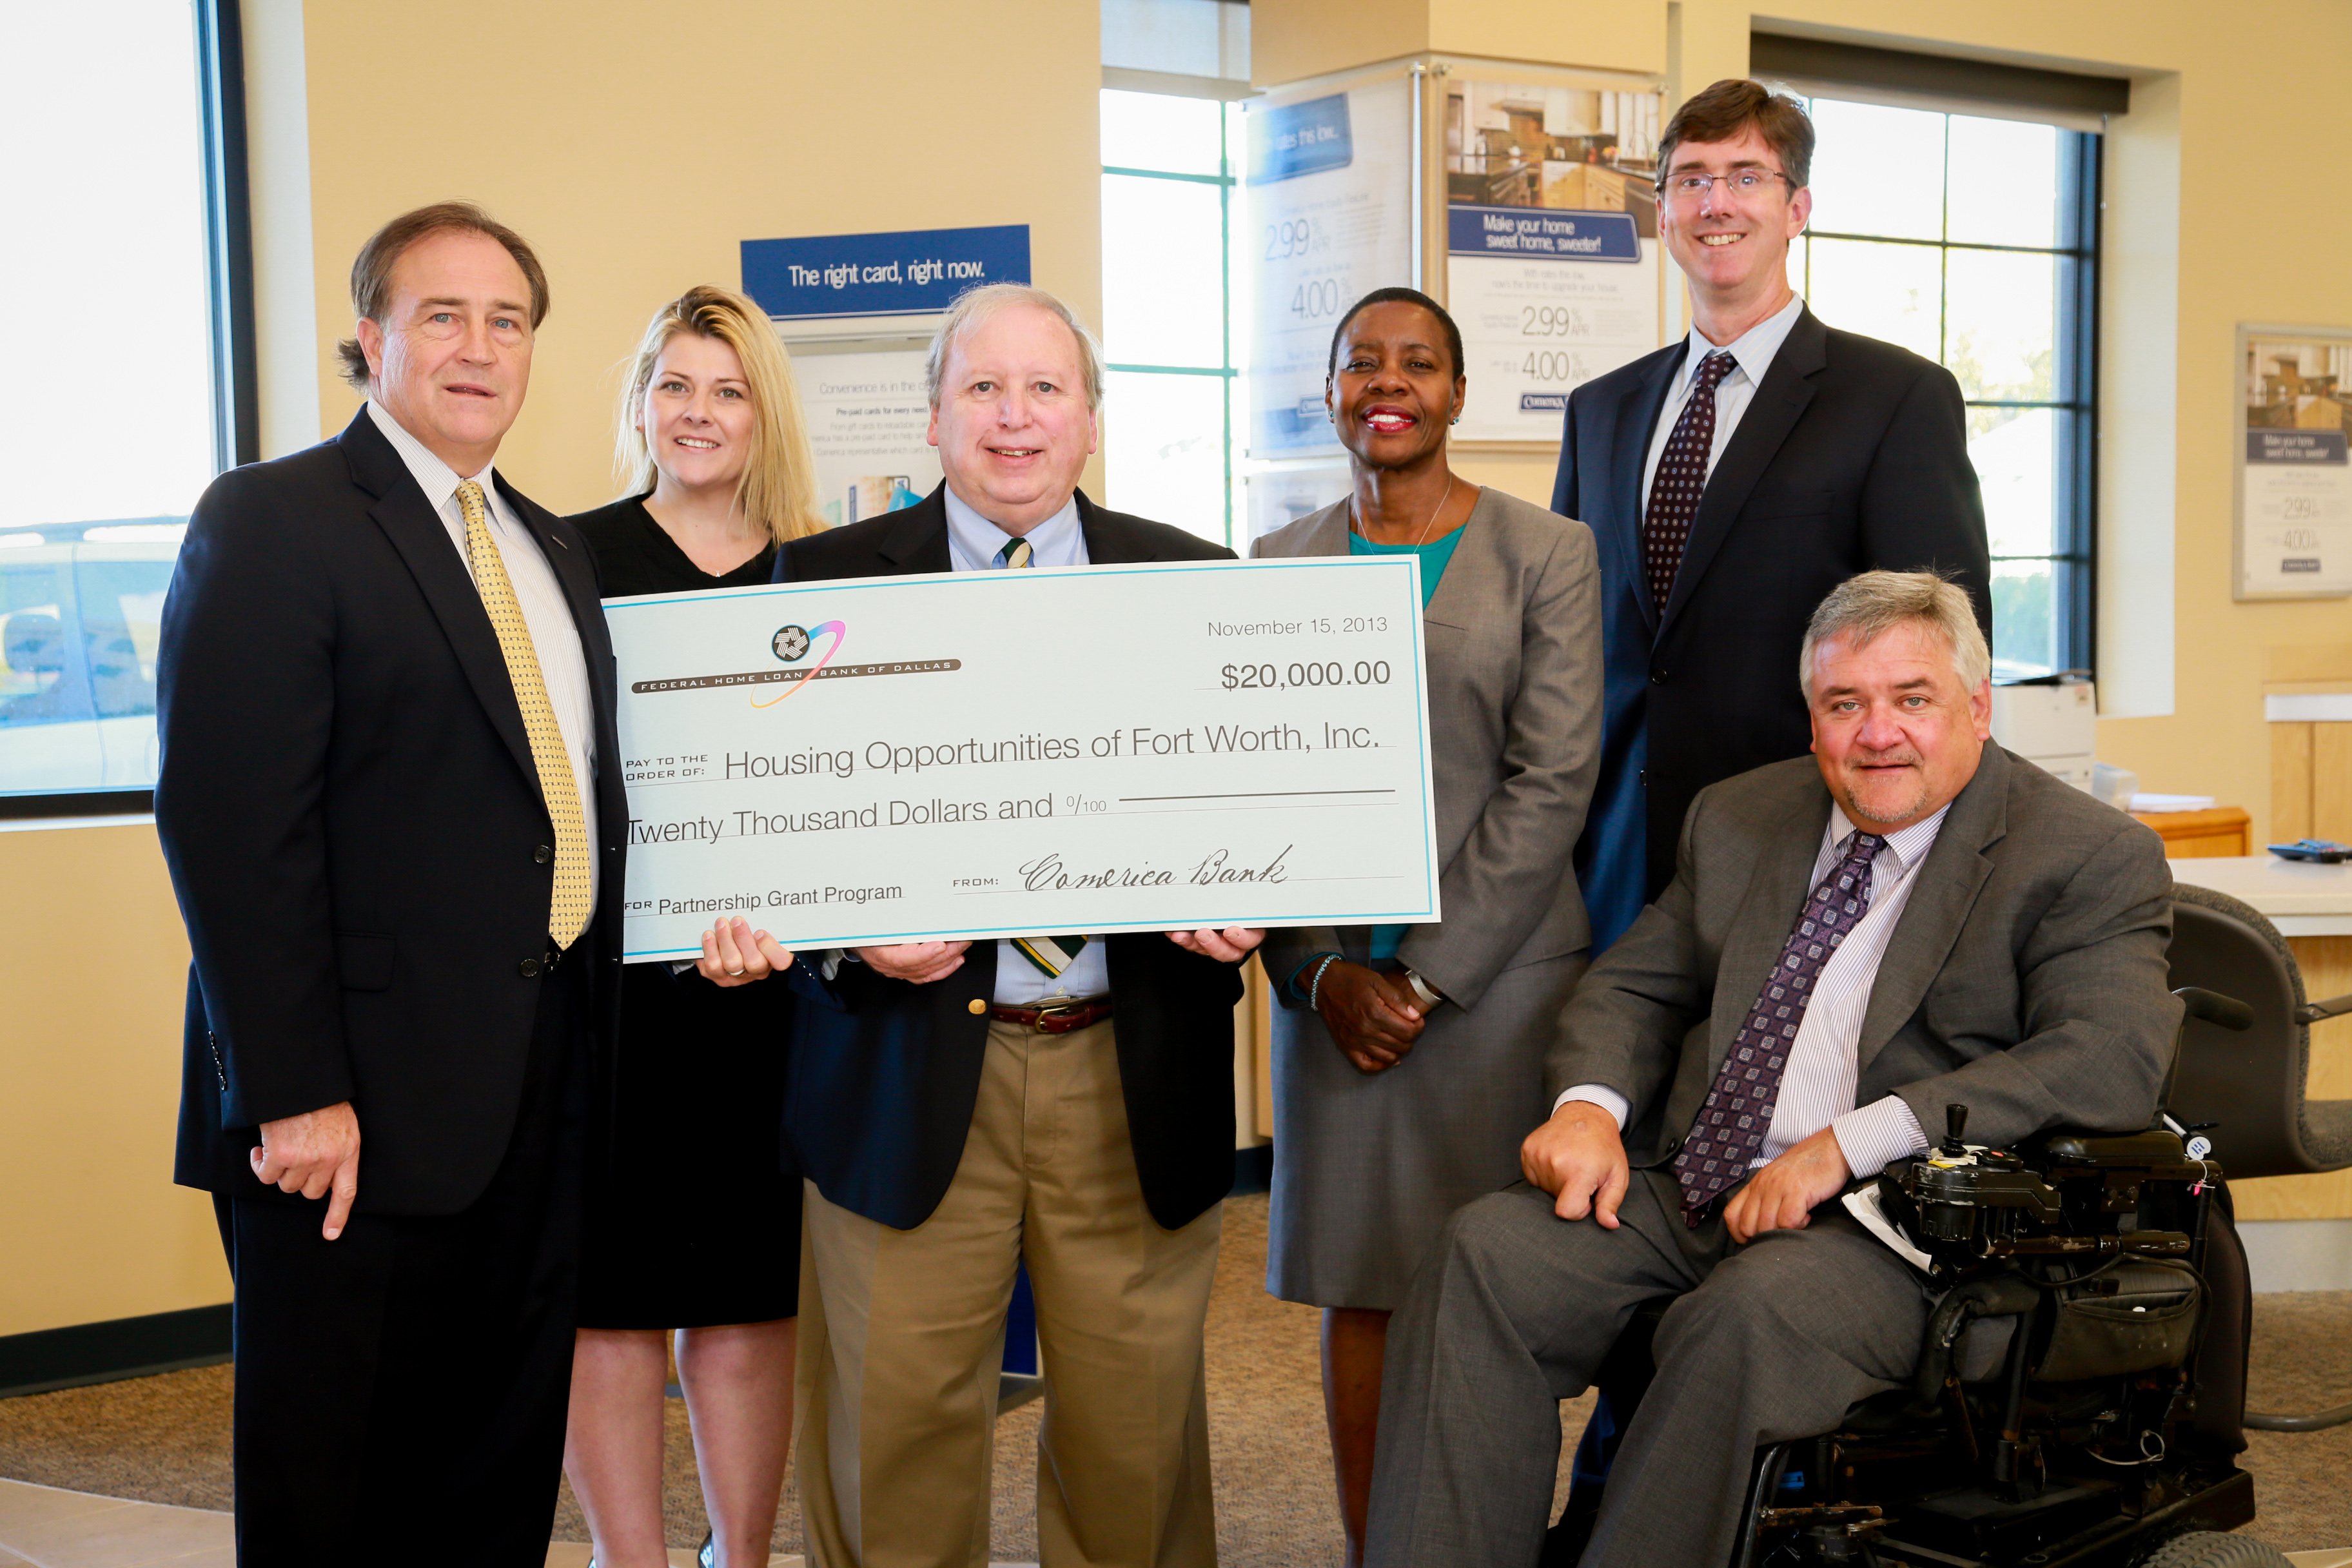 Partnership Grant Awarded to Fort Worth Organization